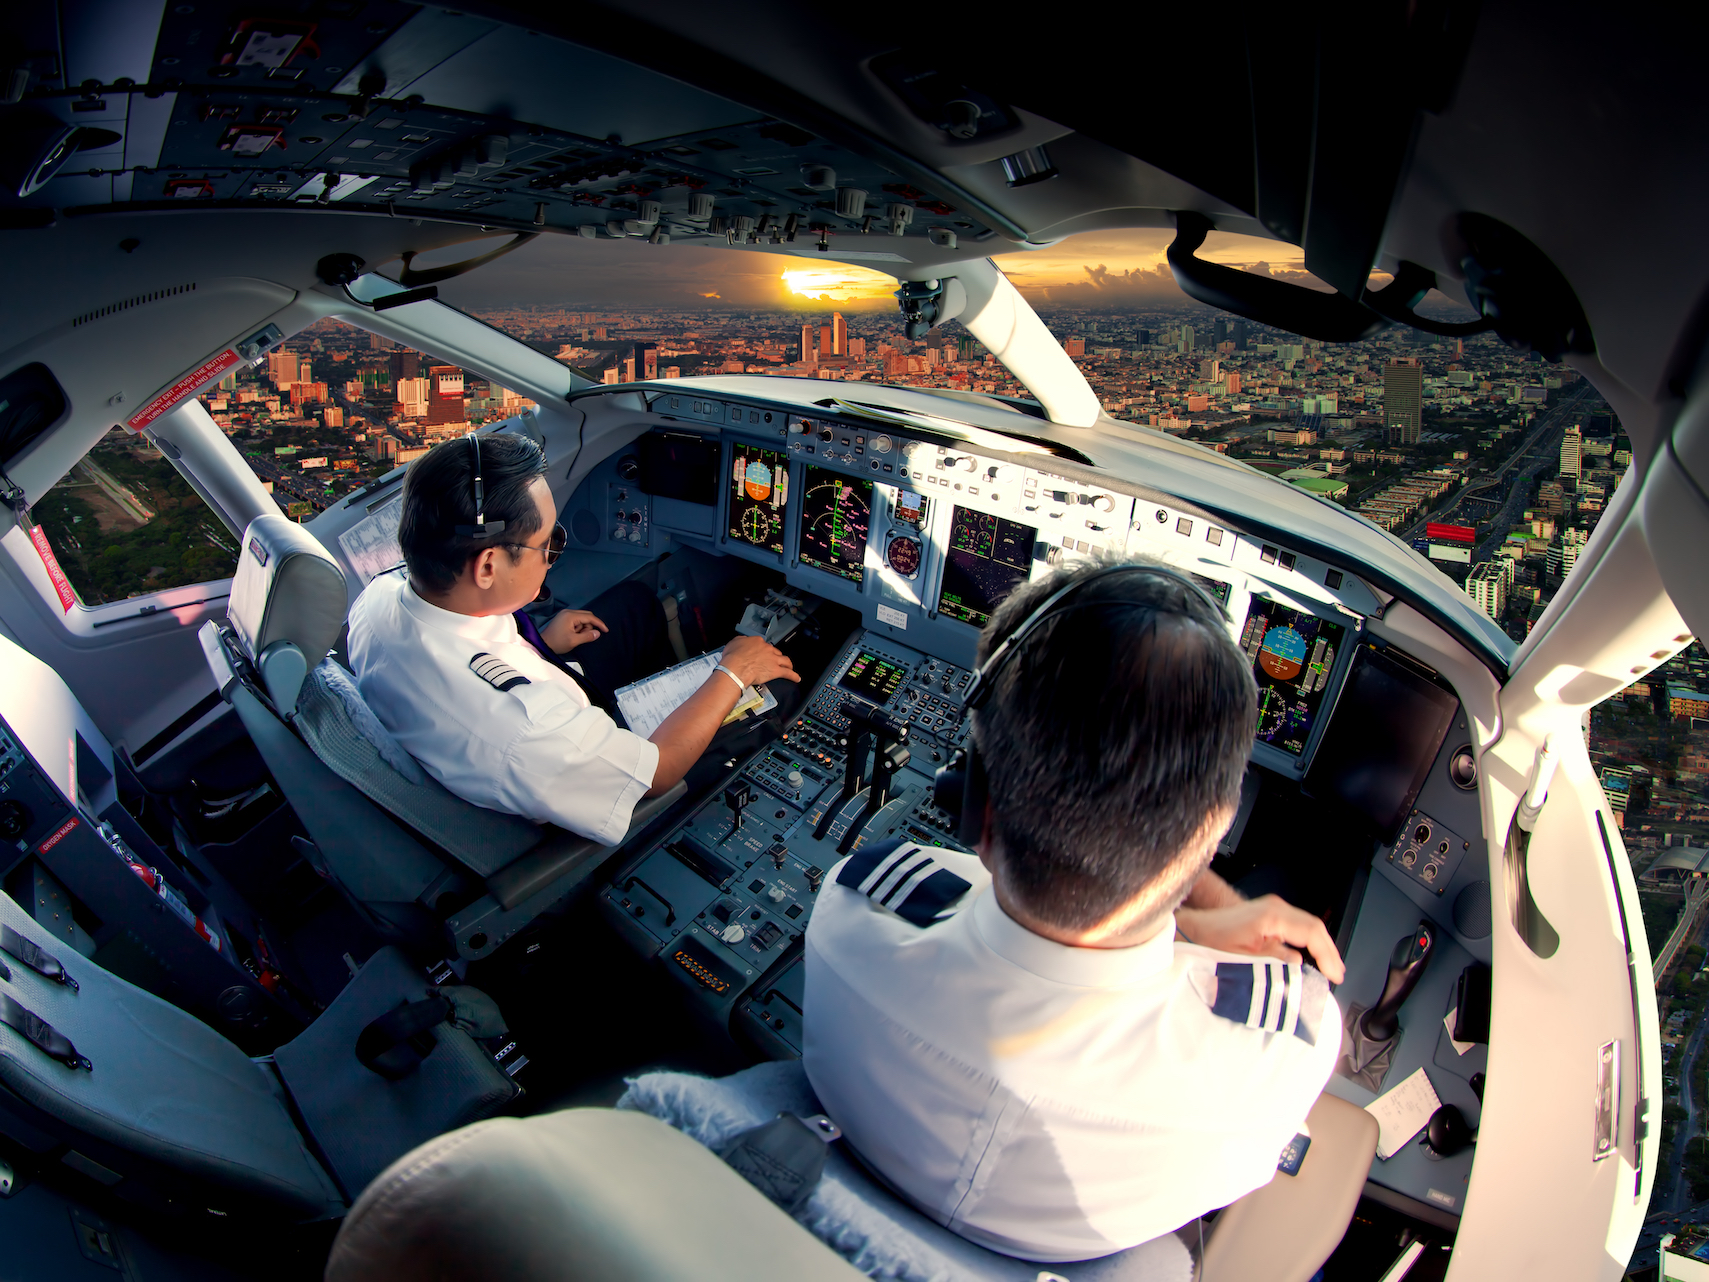 New research from Harvard has found that pilots are directly influenced by carbon dioxide levels on the flight deck.